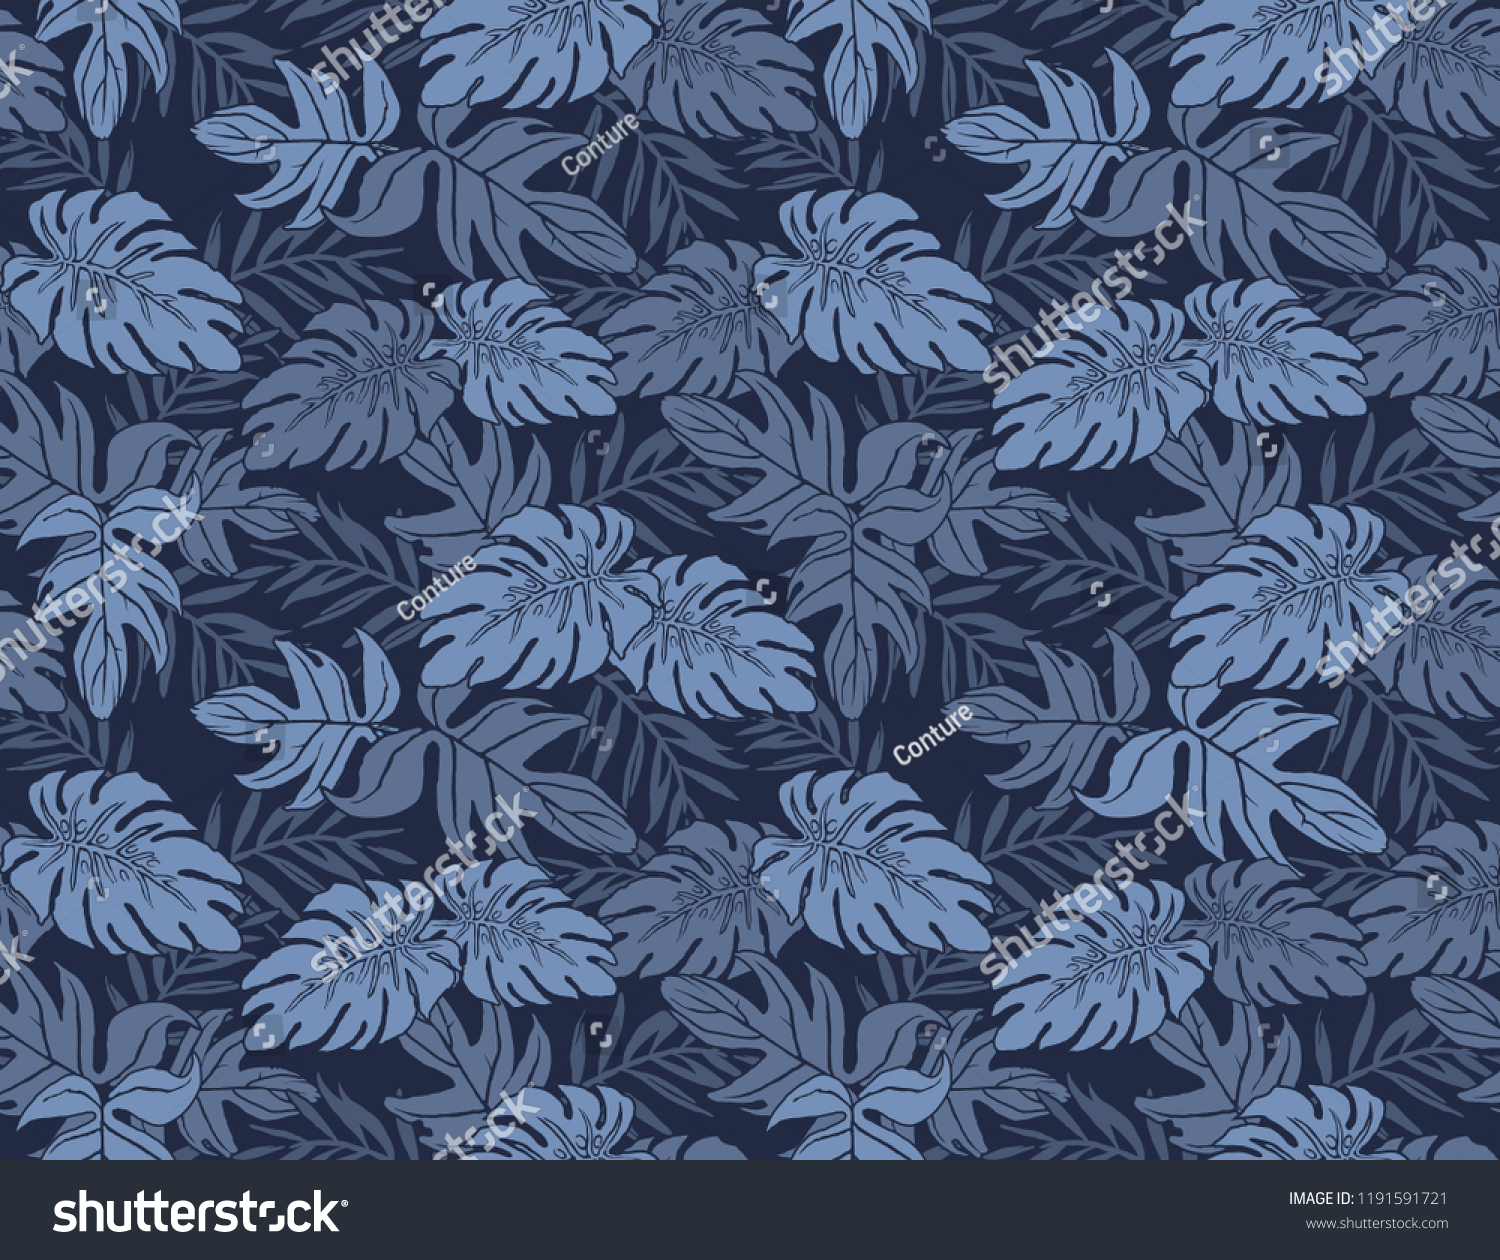 Hawaii Board Shorts Pattern